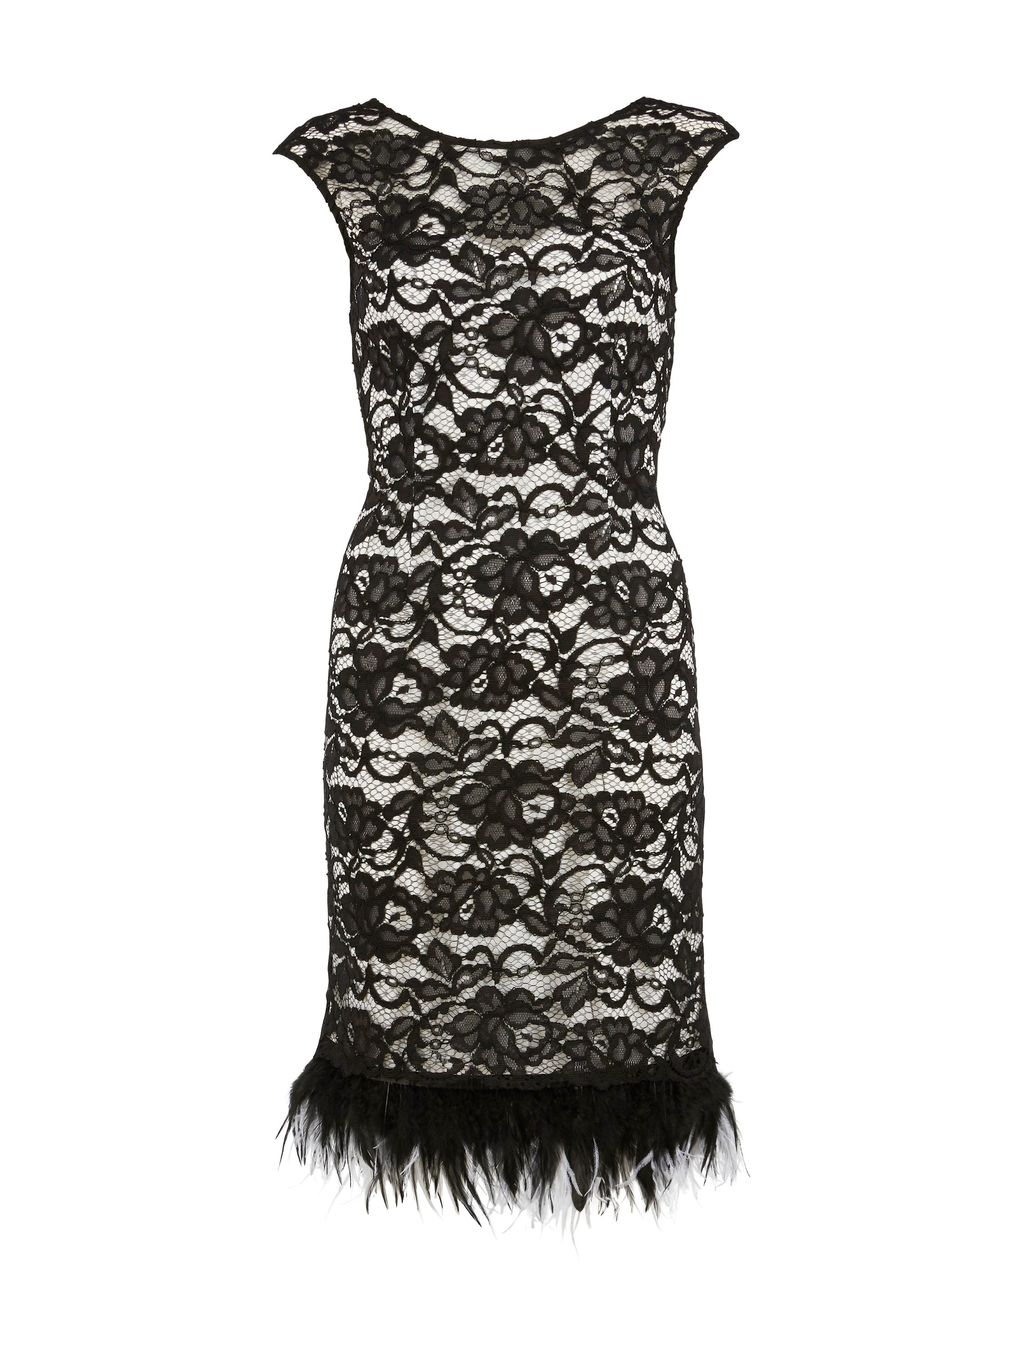 Lace Dress With Feathered Trim, Black/White - style: shift; length: mid thigh; neckline: round neck; sleeve style: capped; fit: tailored/fitted; secondary colour: white; predominant colour: black; occasions: evening, occasion; fibres: polyester/polyamide - 100%; hip detail: added detail/embellishment at hip; sleeve length: short sleeve; texture group: lace; pattern type: fabric; pattern size: standard; pattern: patterned/print; embellishment: feathers; season: s/s 2016